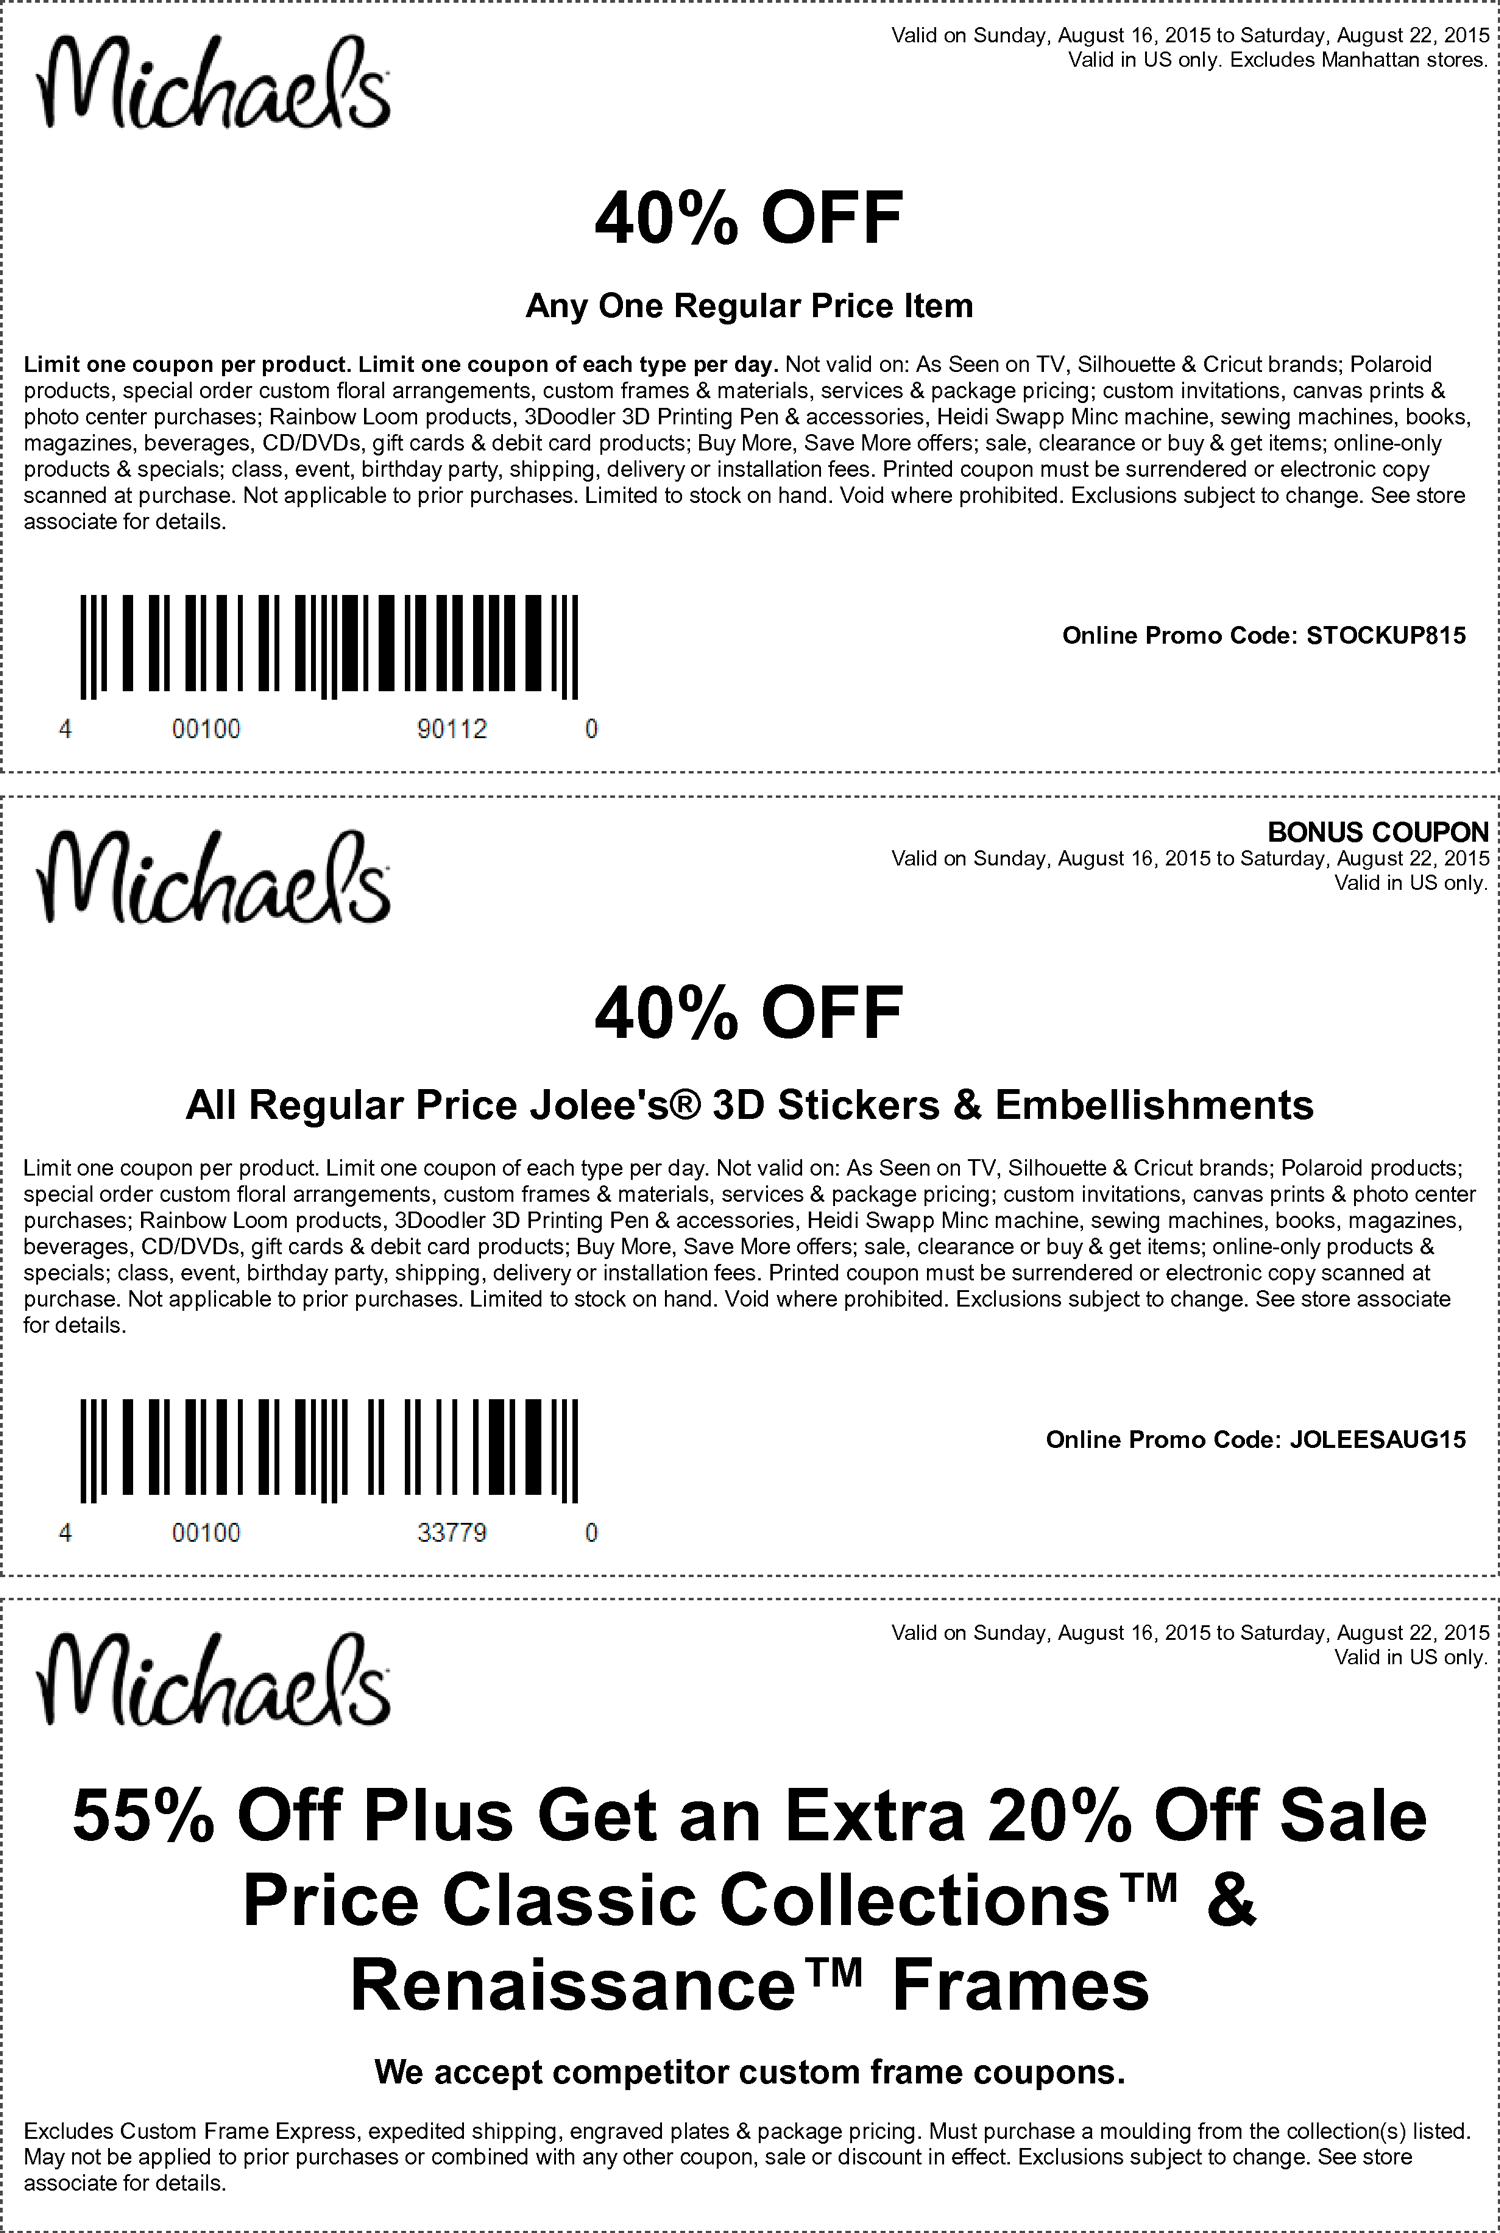 Michaels Coupon August 2017 40% off a single item & more at Michaels, or online via promo code STOCKUP815